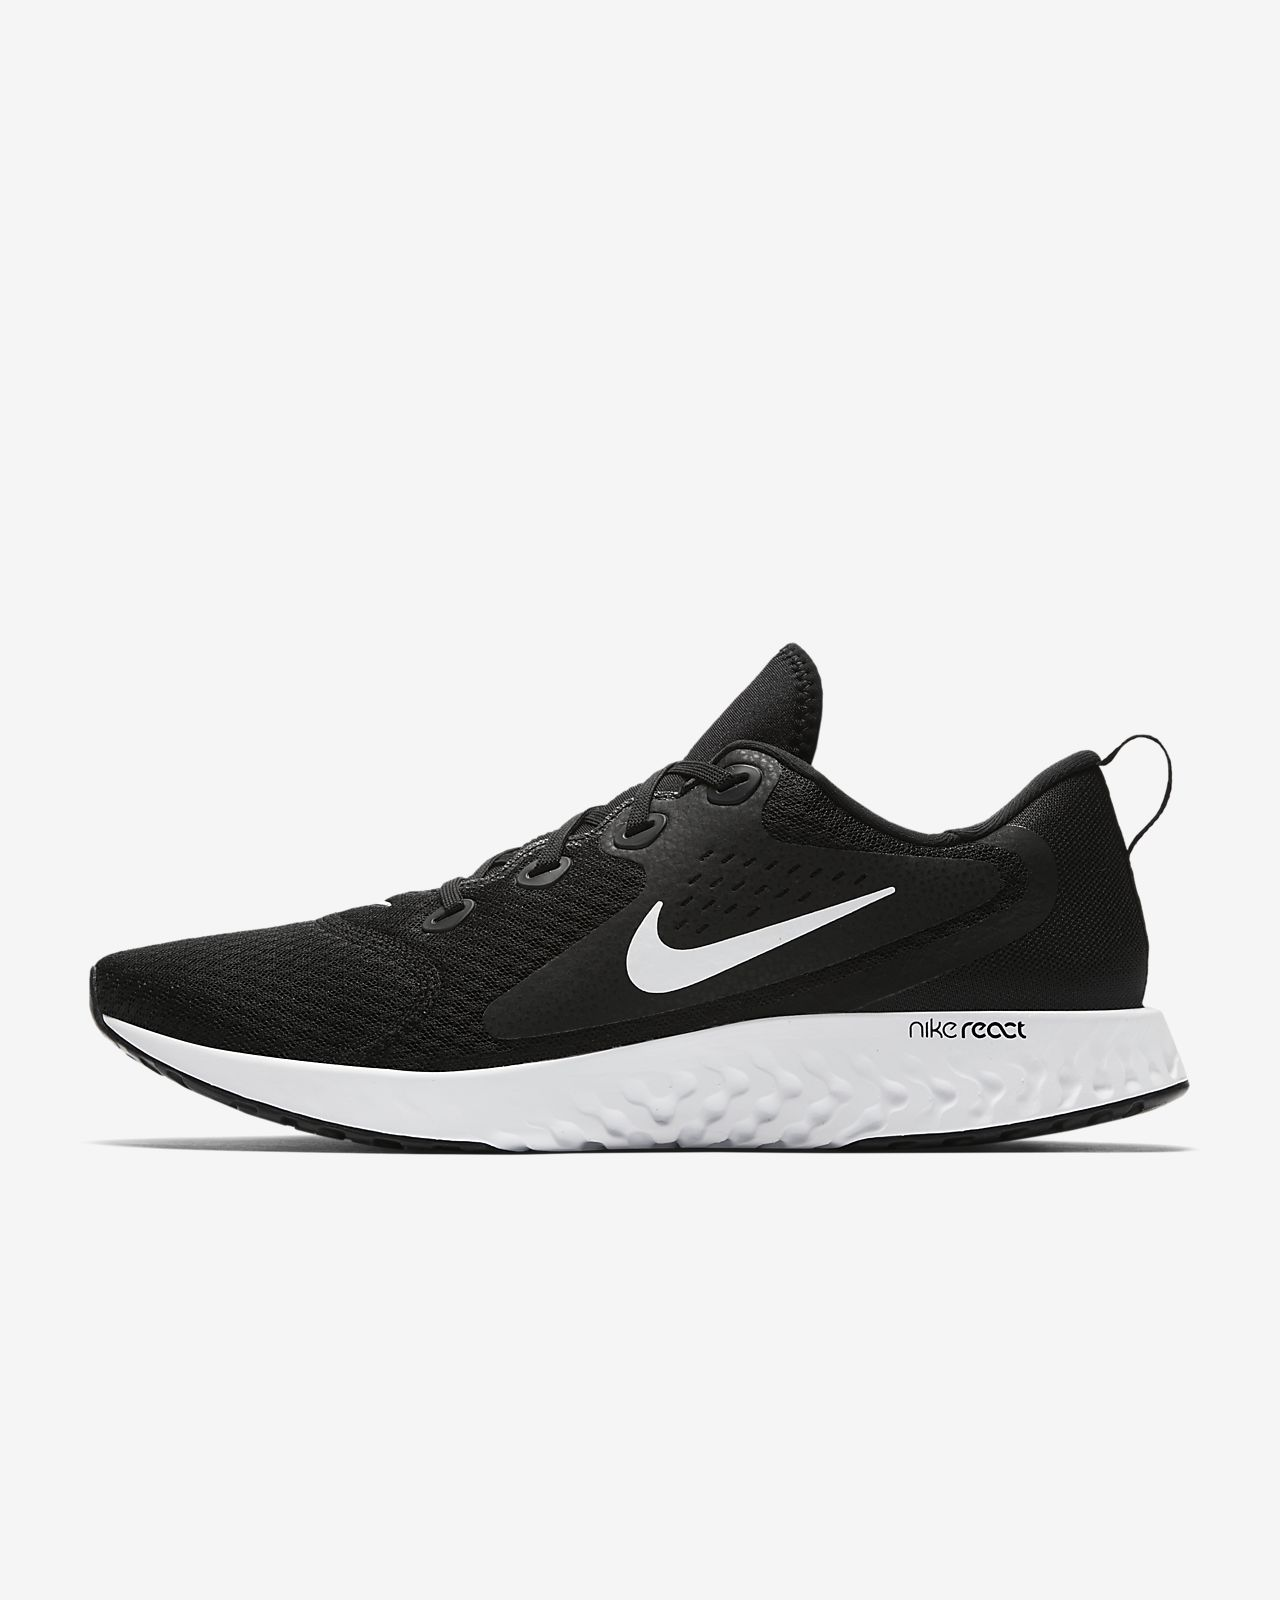 sale retailer 03a76 031e3 ... Nike Legend React Men s Running Shoe